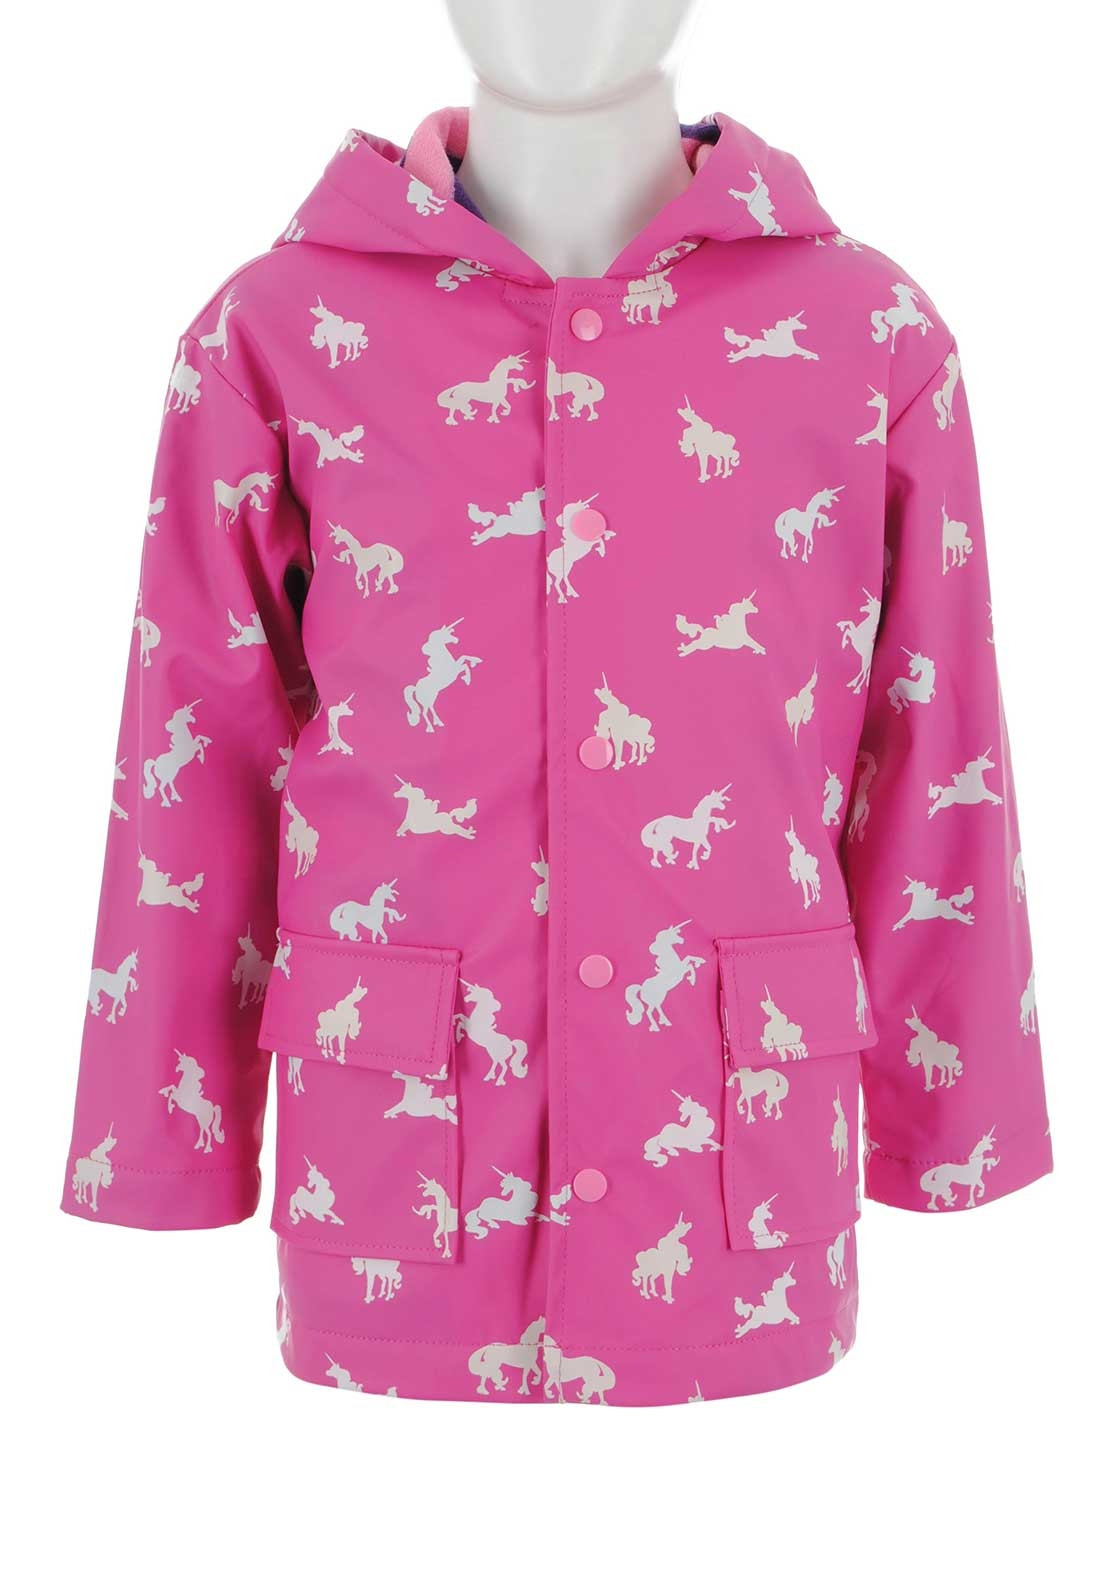 b7049948d Hatley Girls Colour Changing Unicorn Rain Coat, Pink. Be the first to  review this product